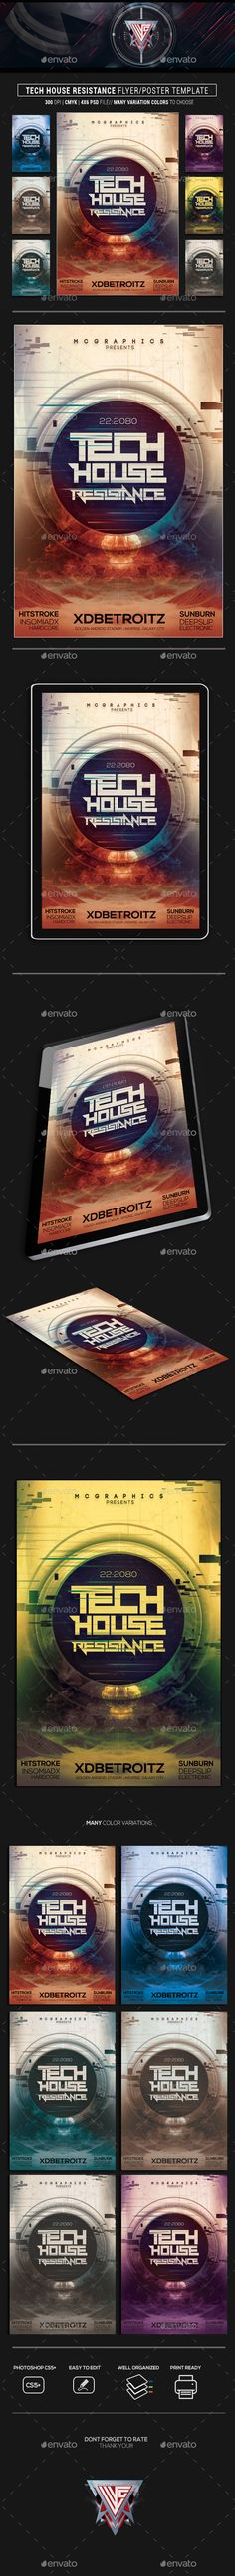 Tech House Resistance #Flyer / Poster Template - Events Flyers